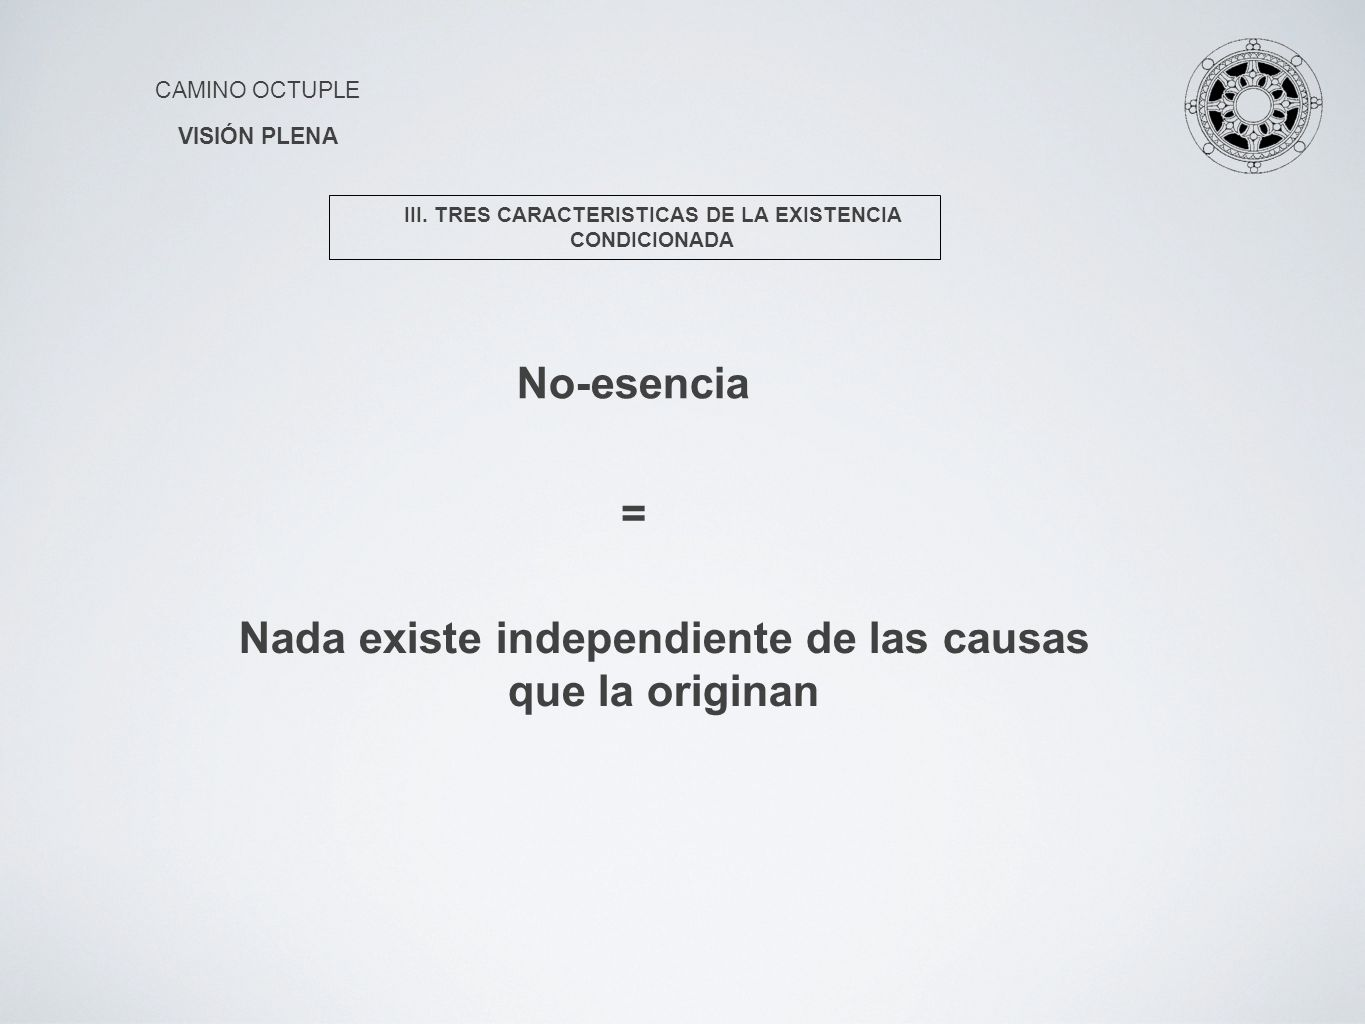 No-esencia = Nada existe independiente de las causas que la originan